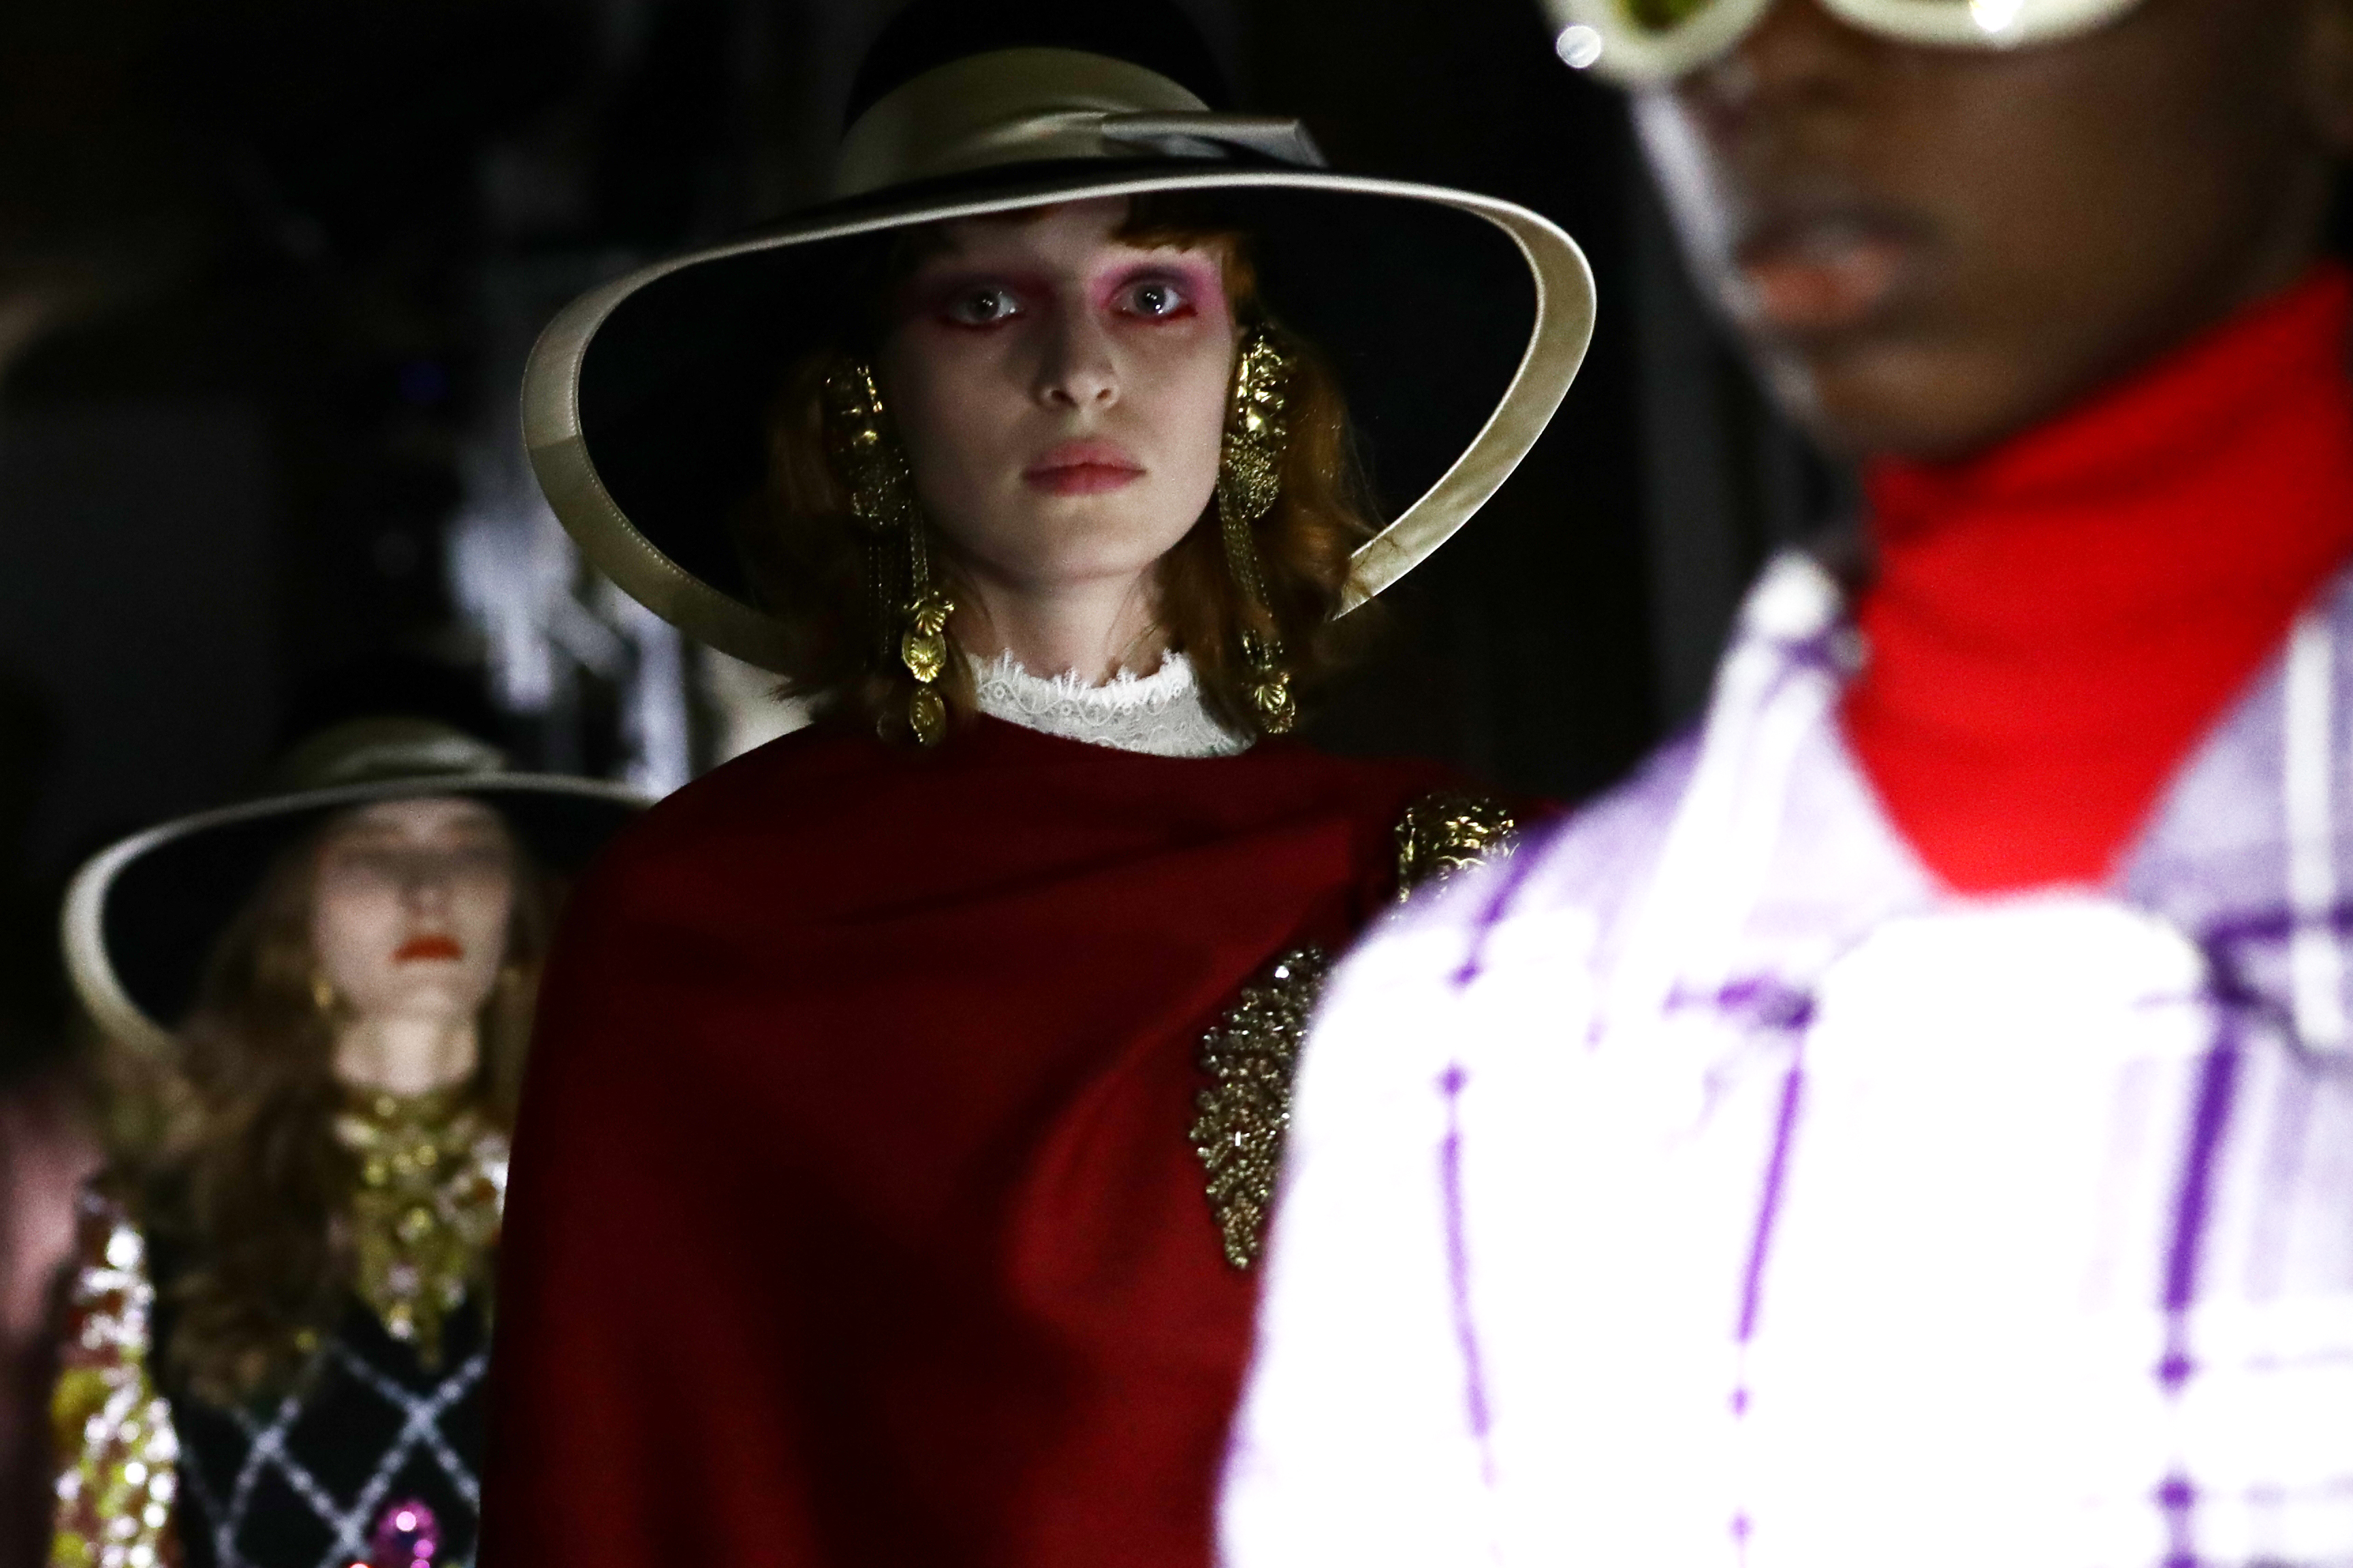 A model walks the runway at the Gucci Cruise 2020 show at Musei Capitolini on May 28, 2019 in Rome, Italy.